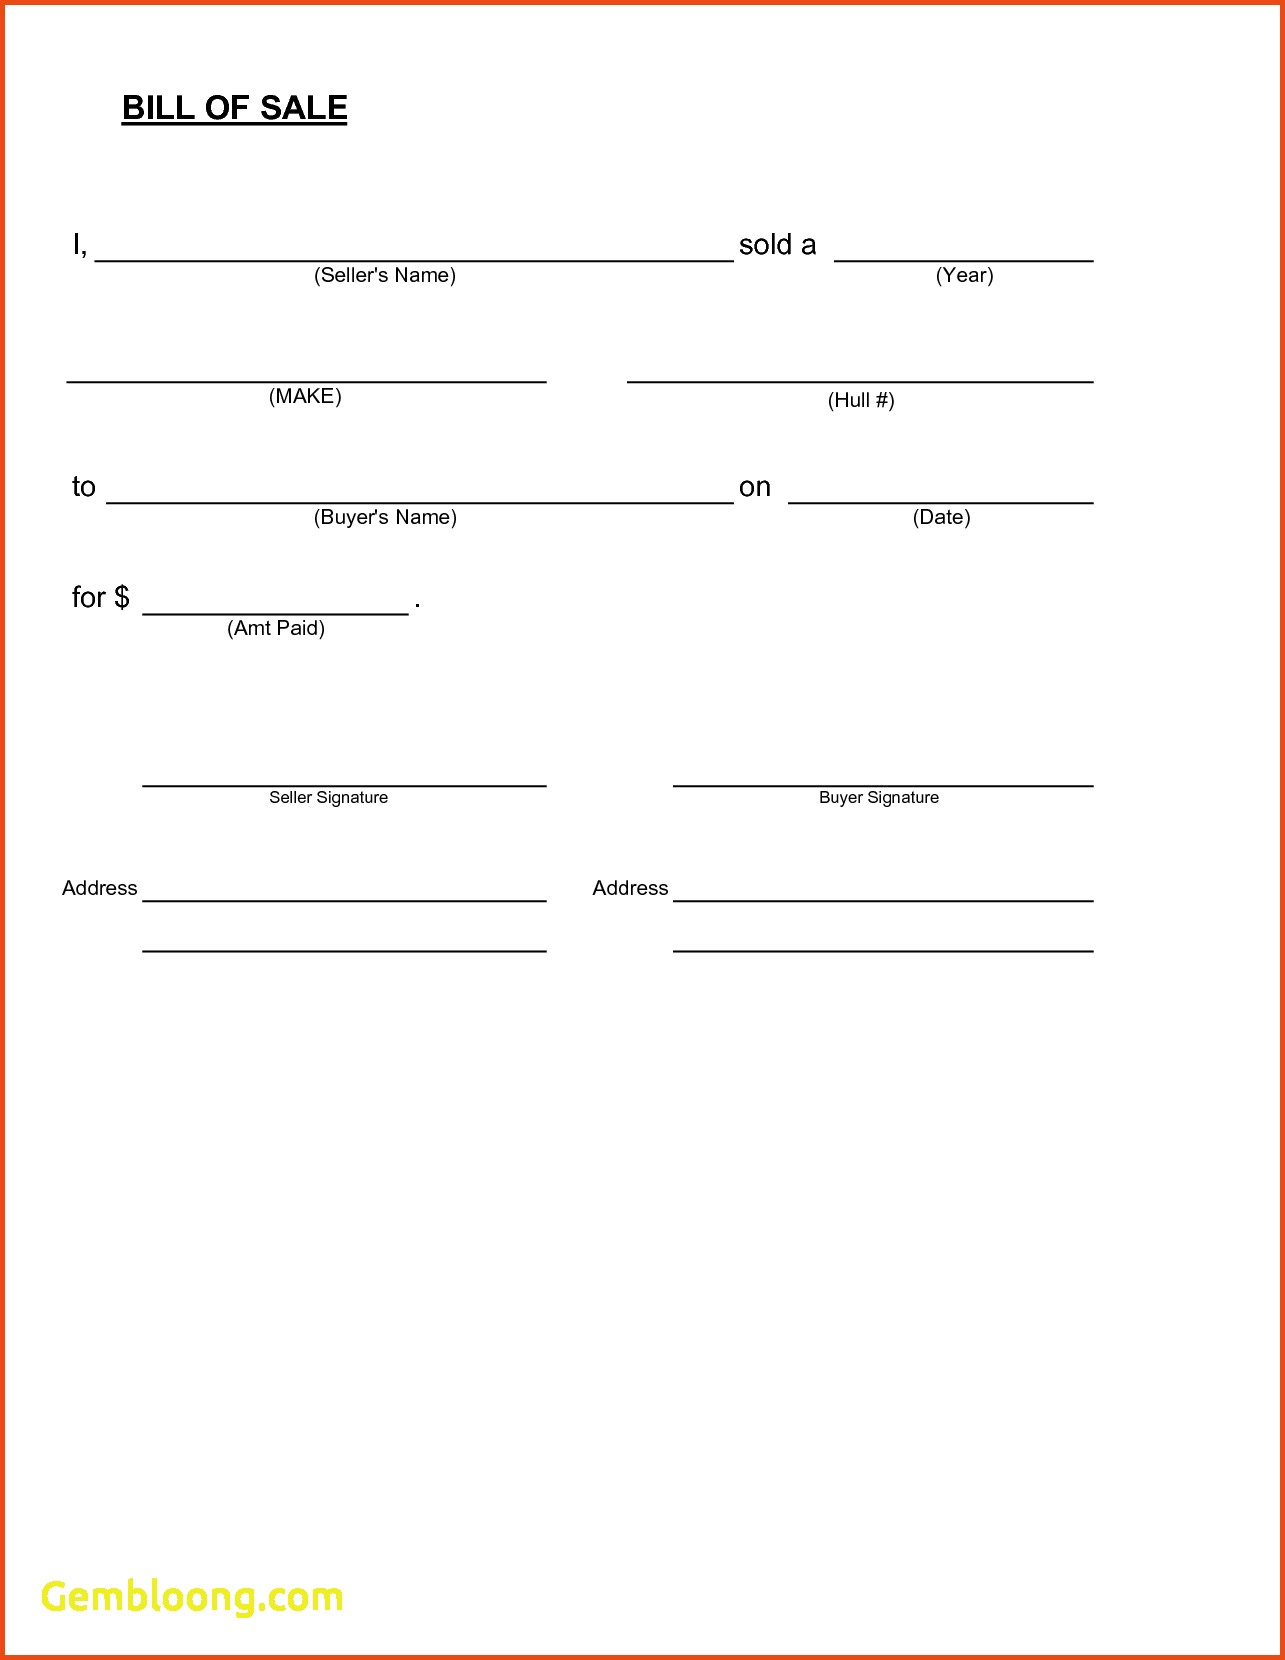 blank bill of sale form printable   Ibov.jonathandedecker.com